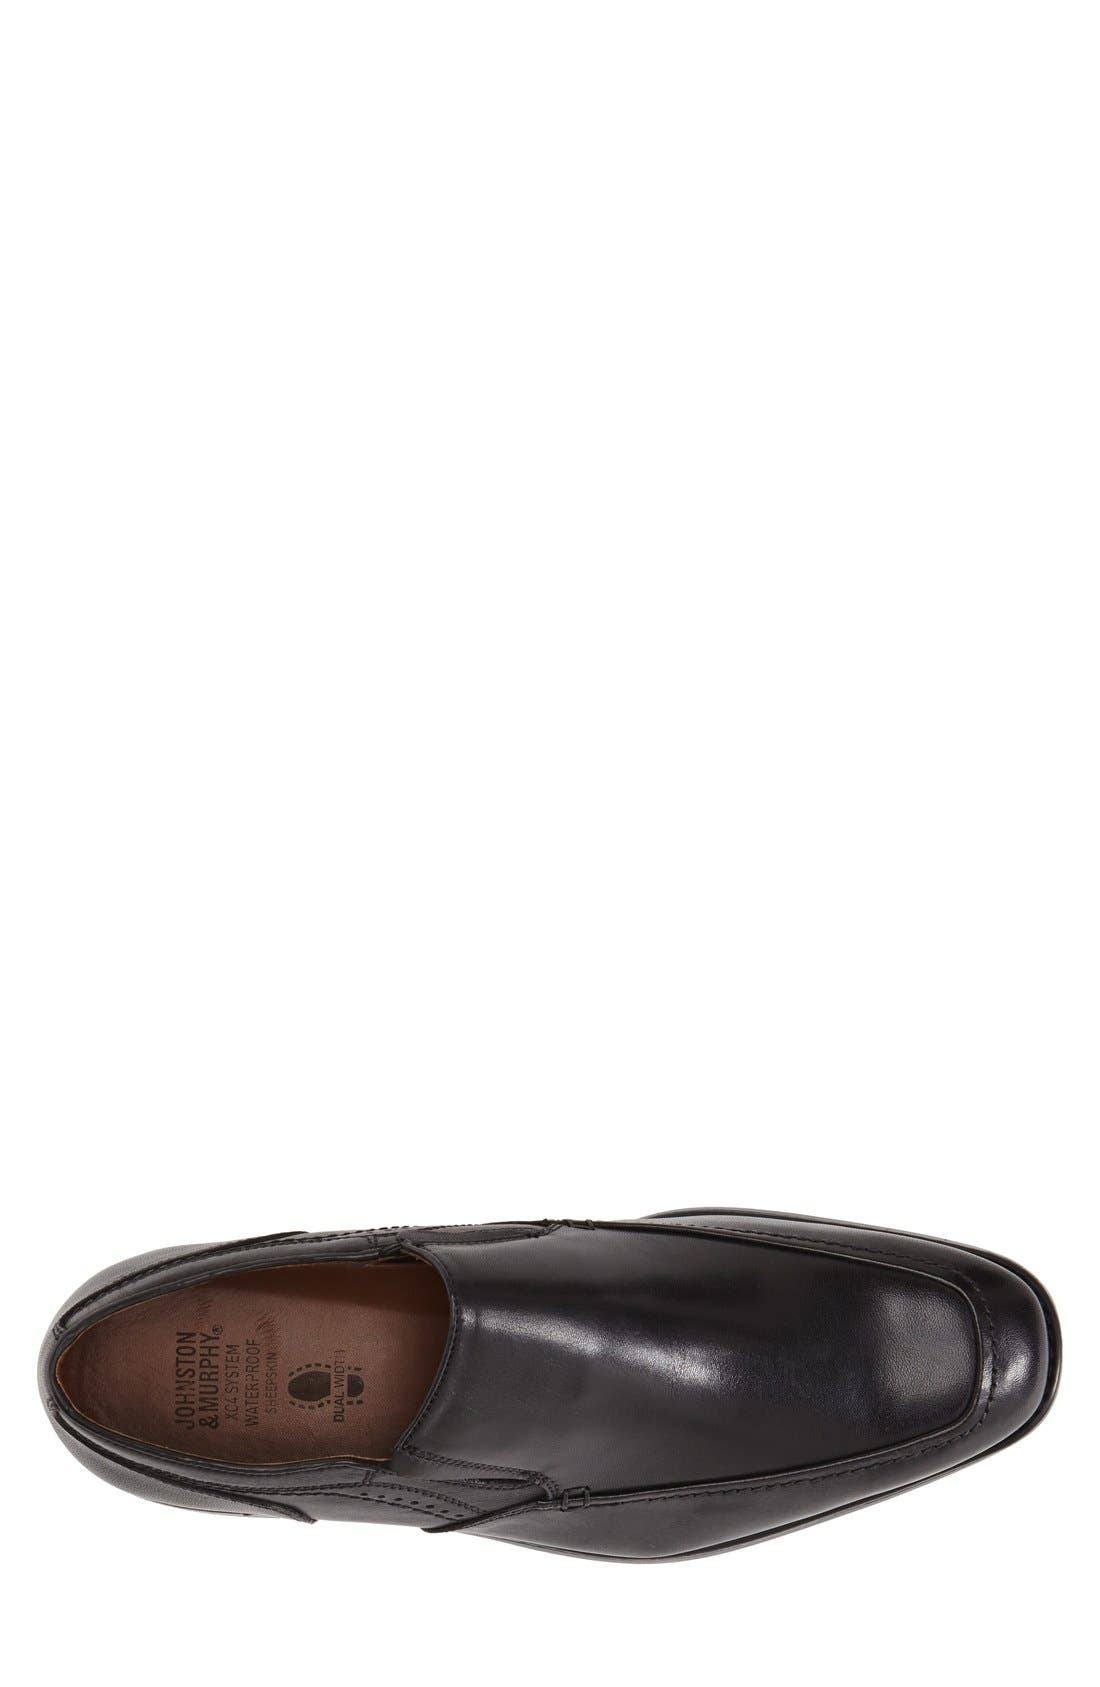 Alternate Image 3  - Johnston & Murphy 'Branning' Venetian Loafer (Men)